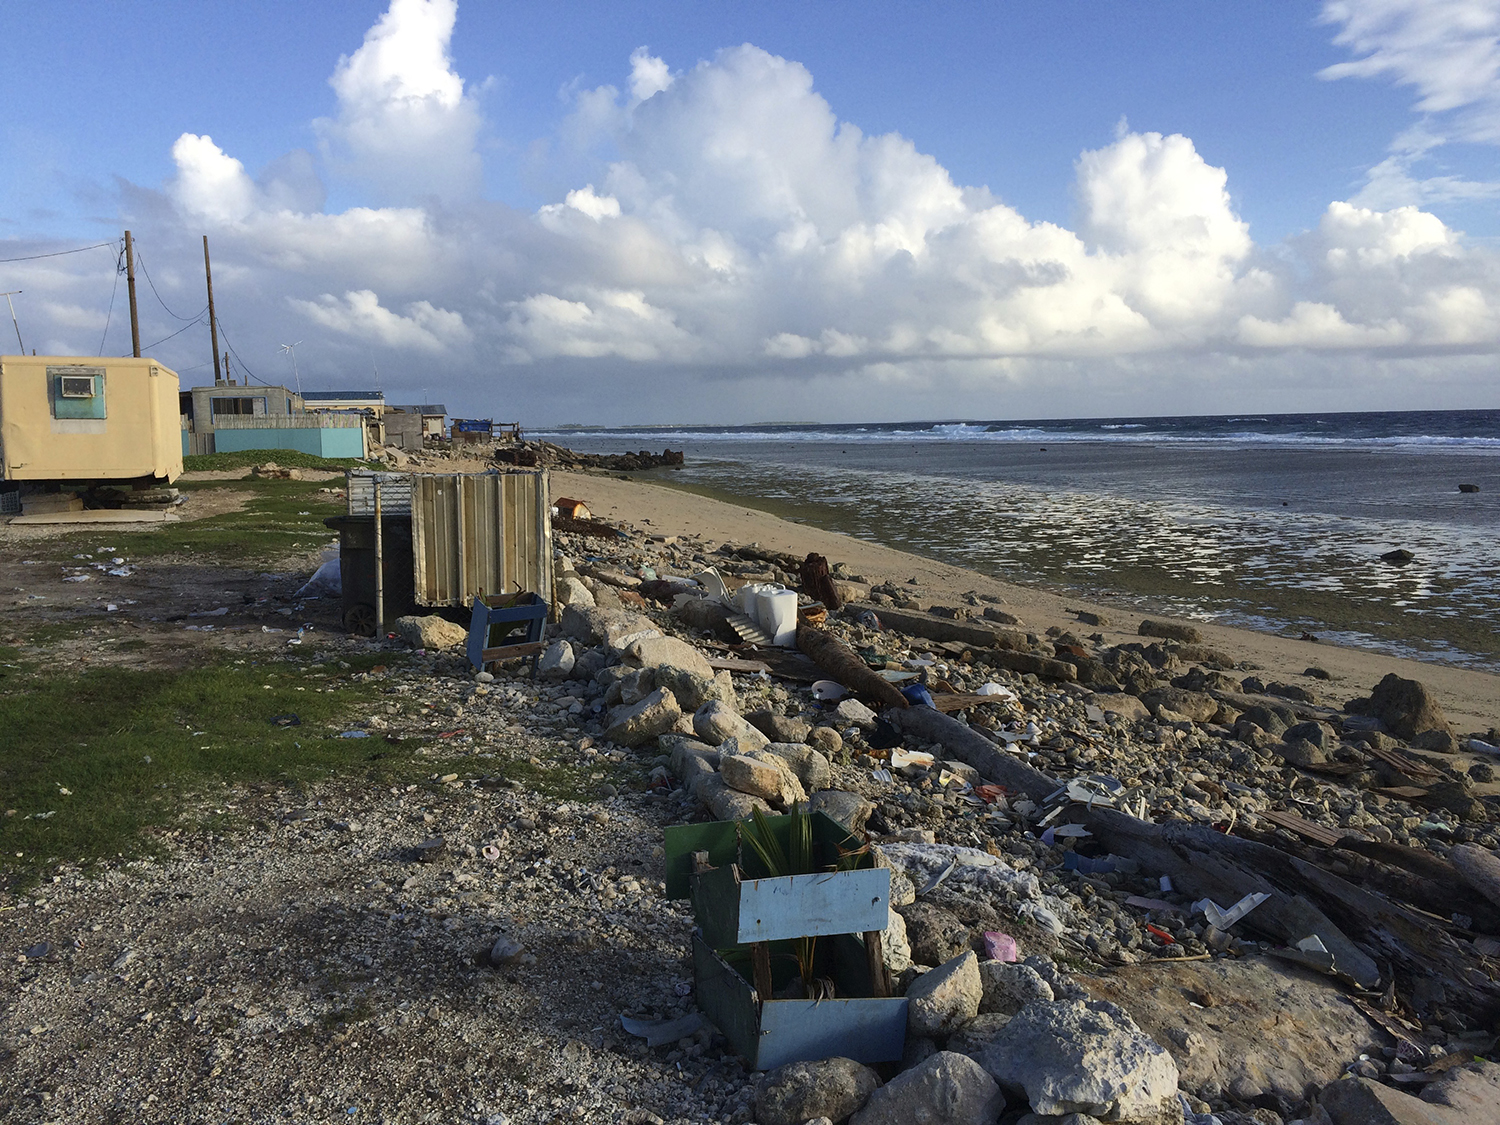 <p>Poverty is widespread in Ebeye, like this ocean-side abode where litter and debris pile up.</p>